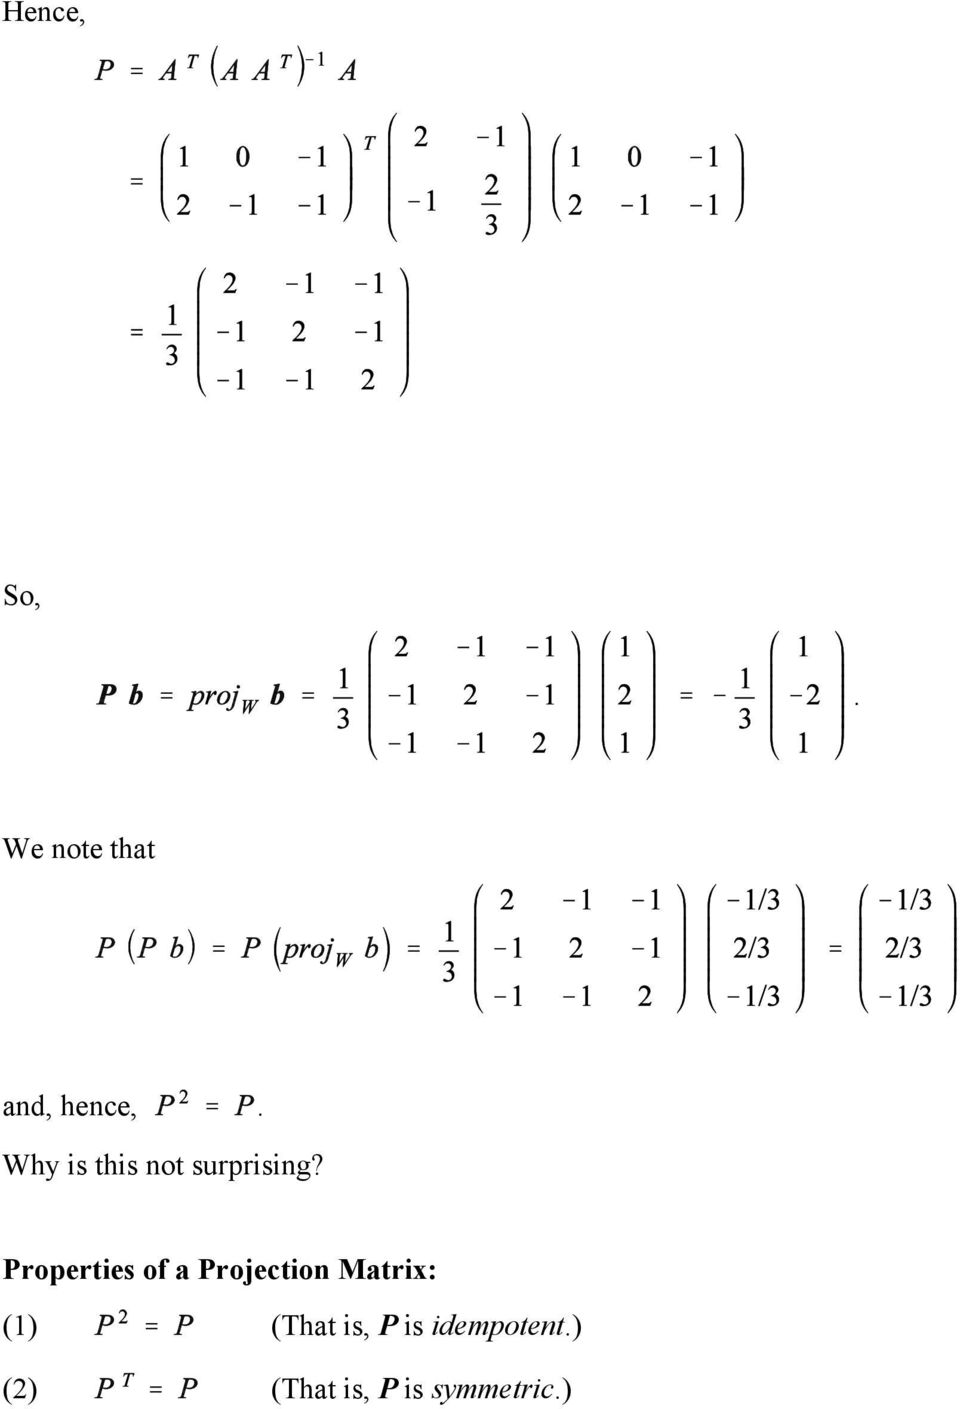 Properties of a Projection Matrix: (1)